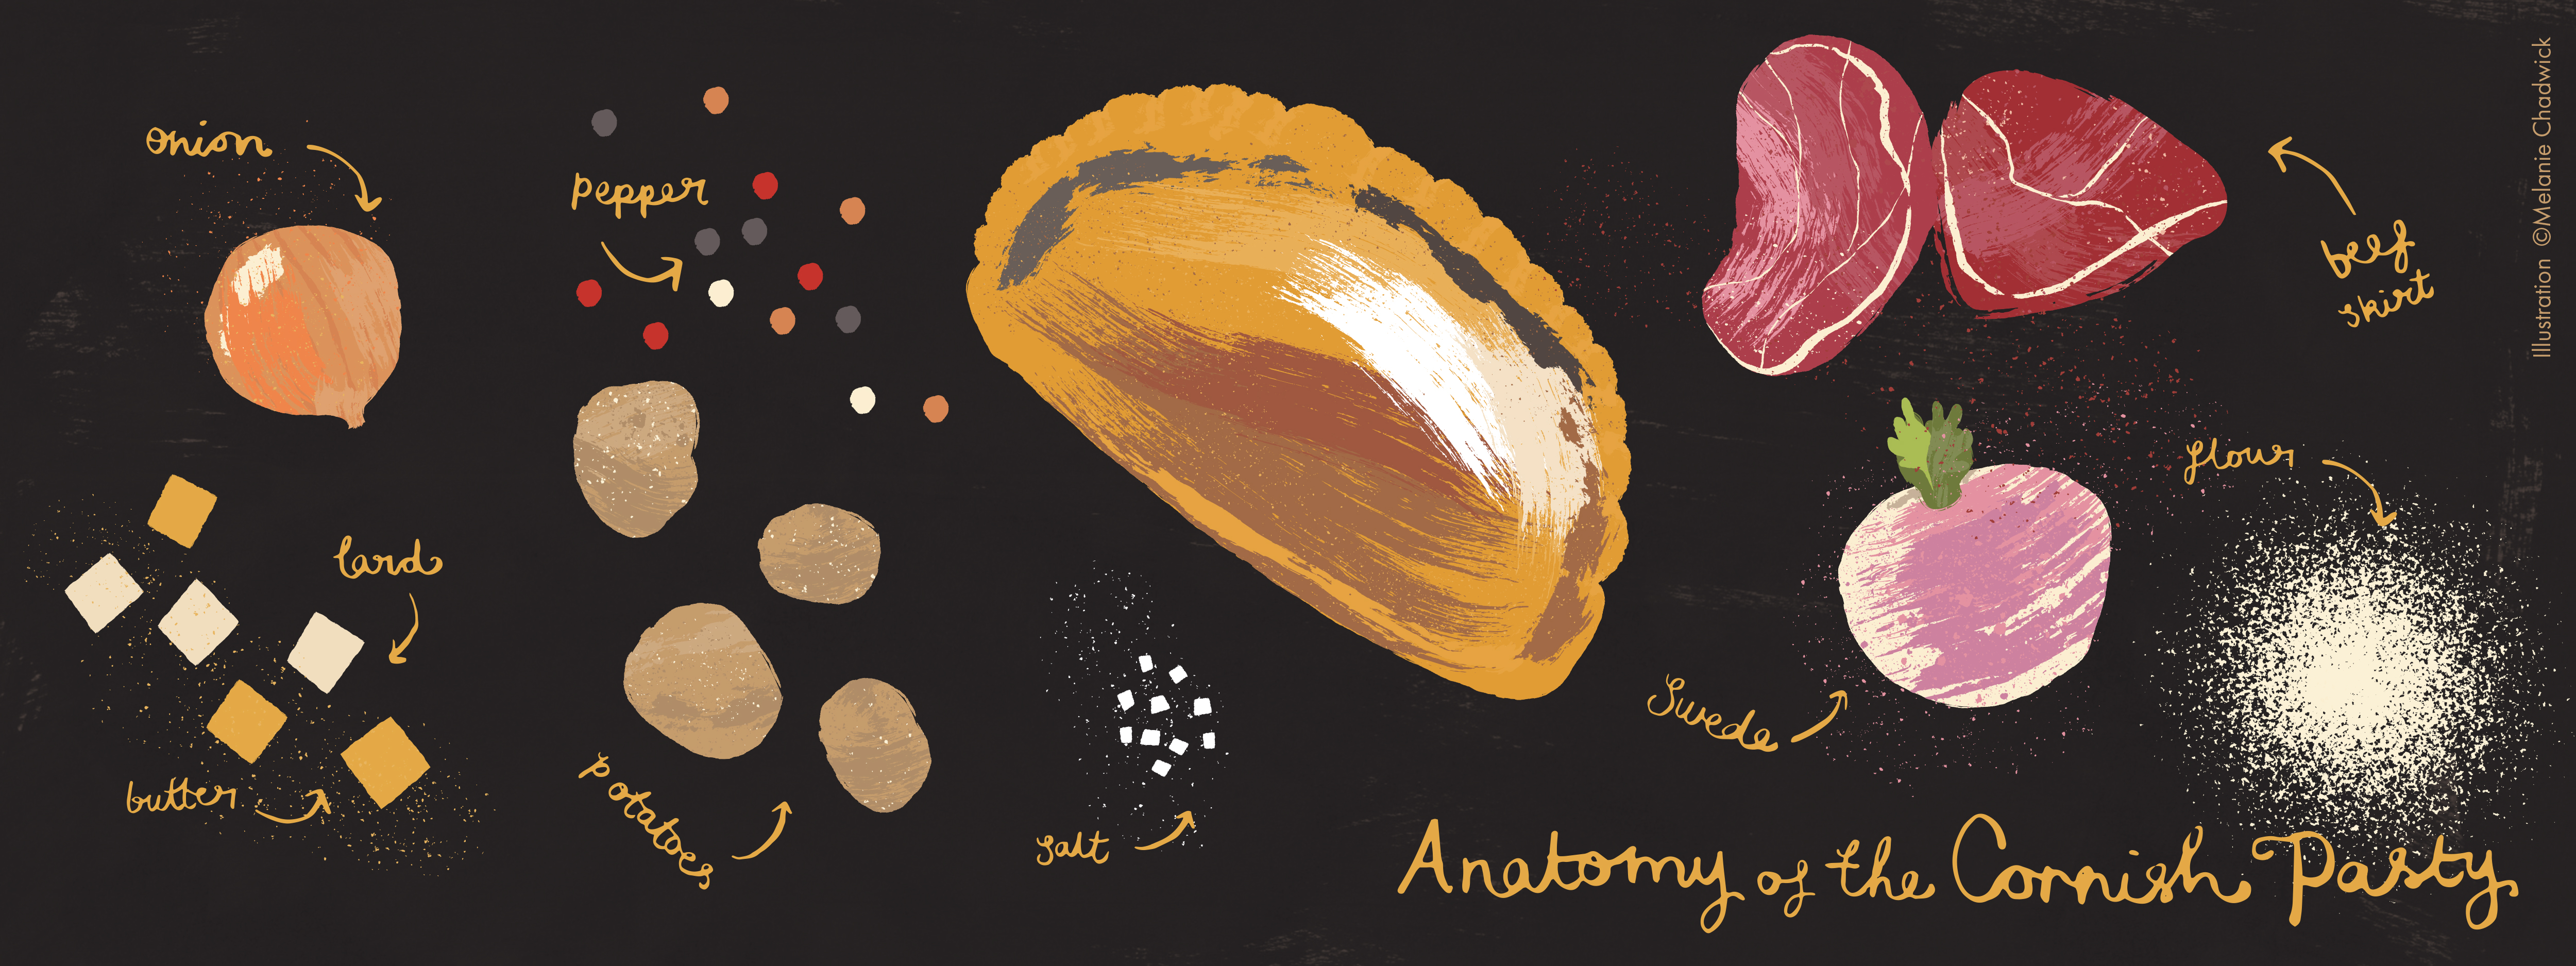 Pasty_anatomy-TDAC